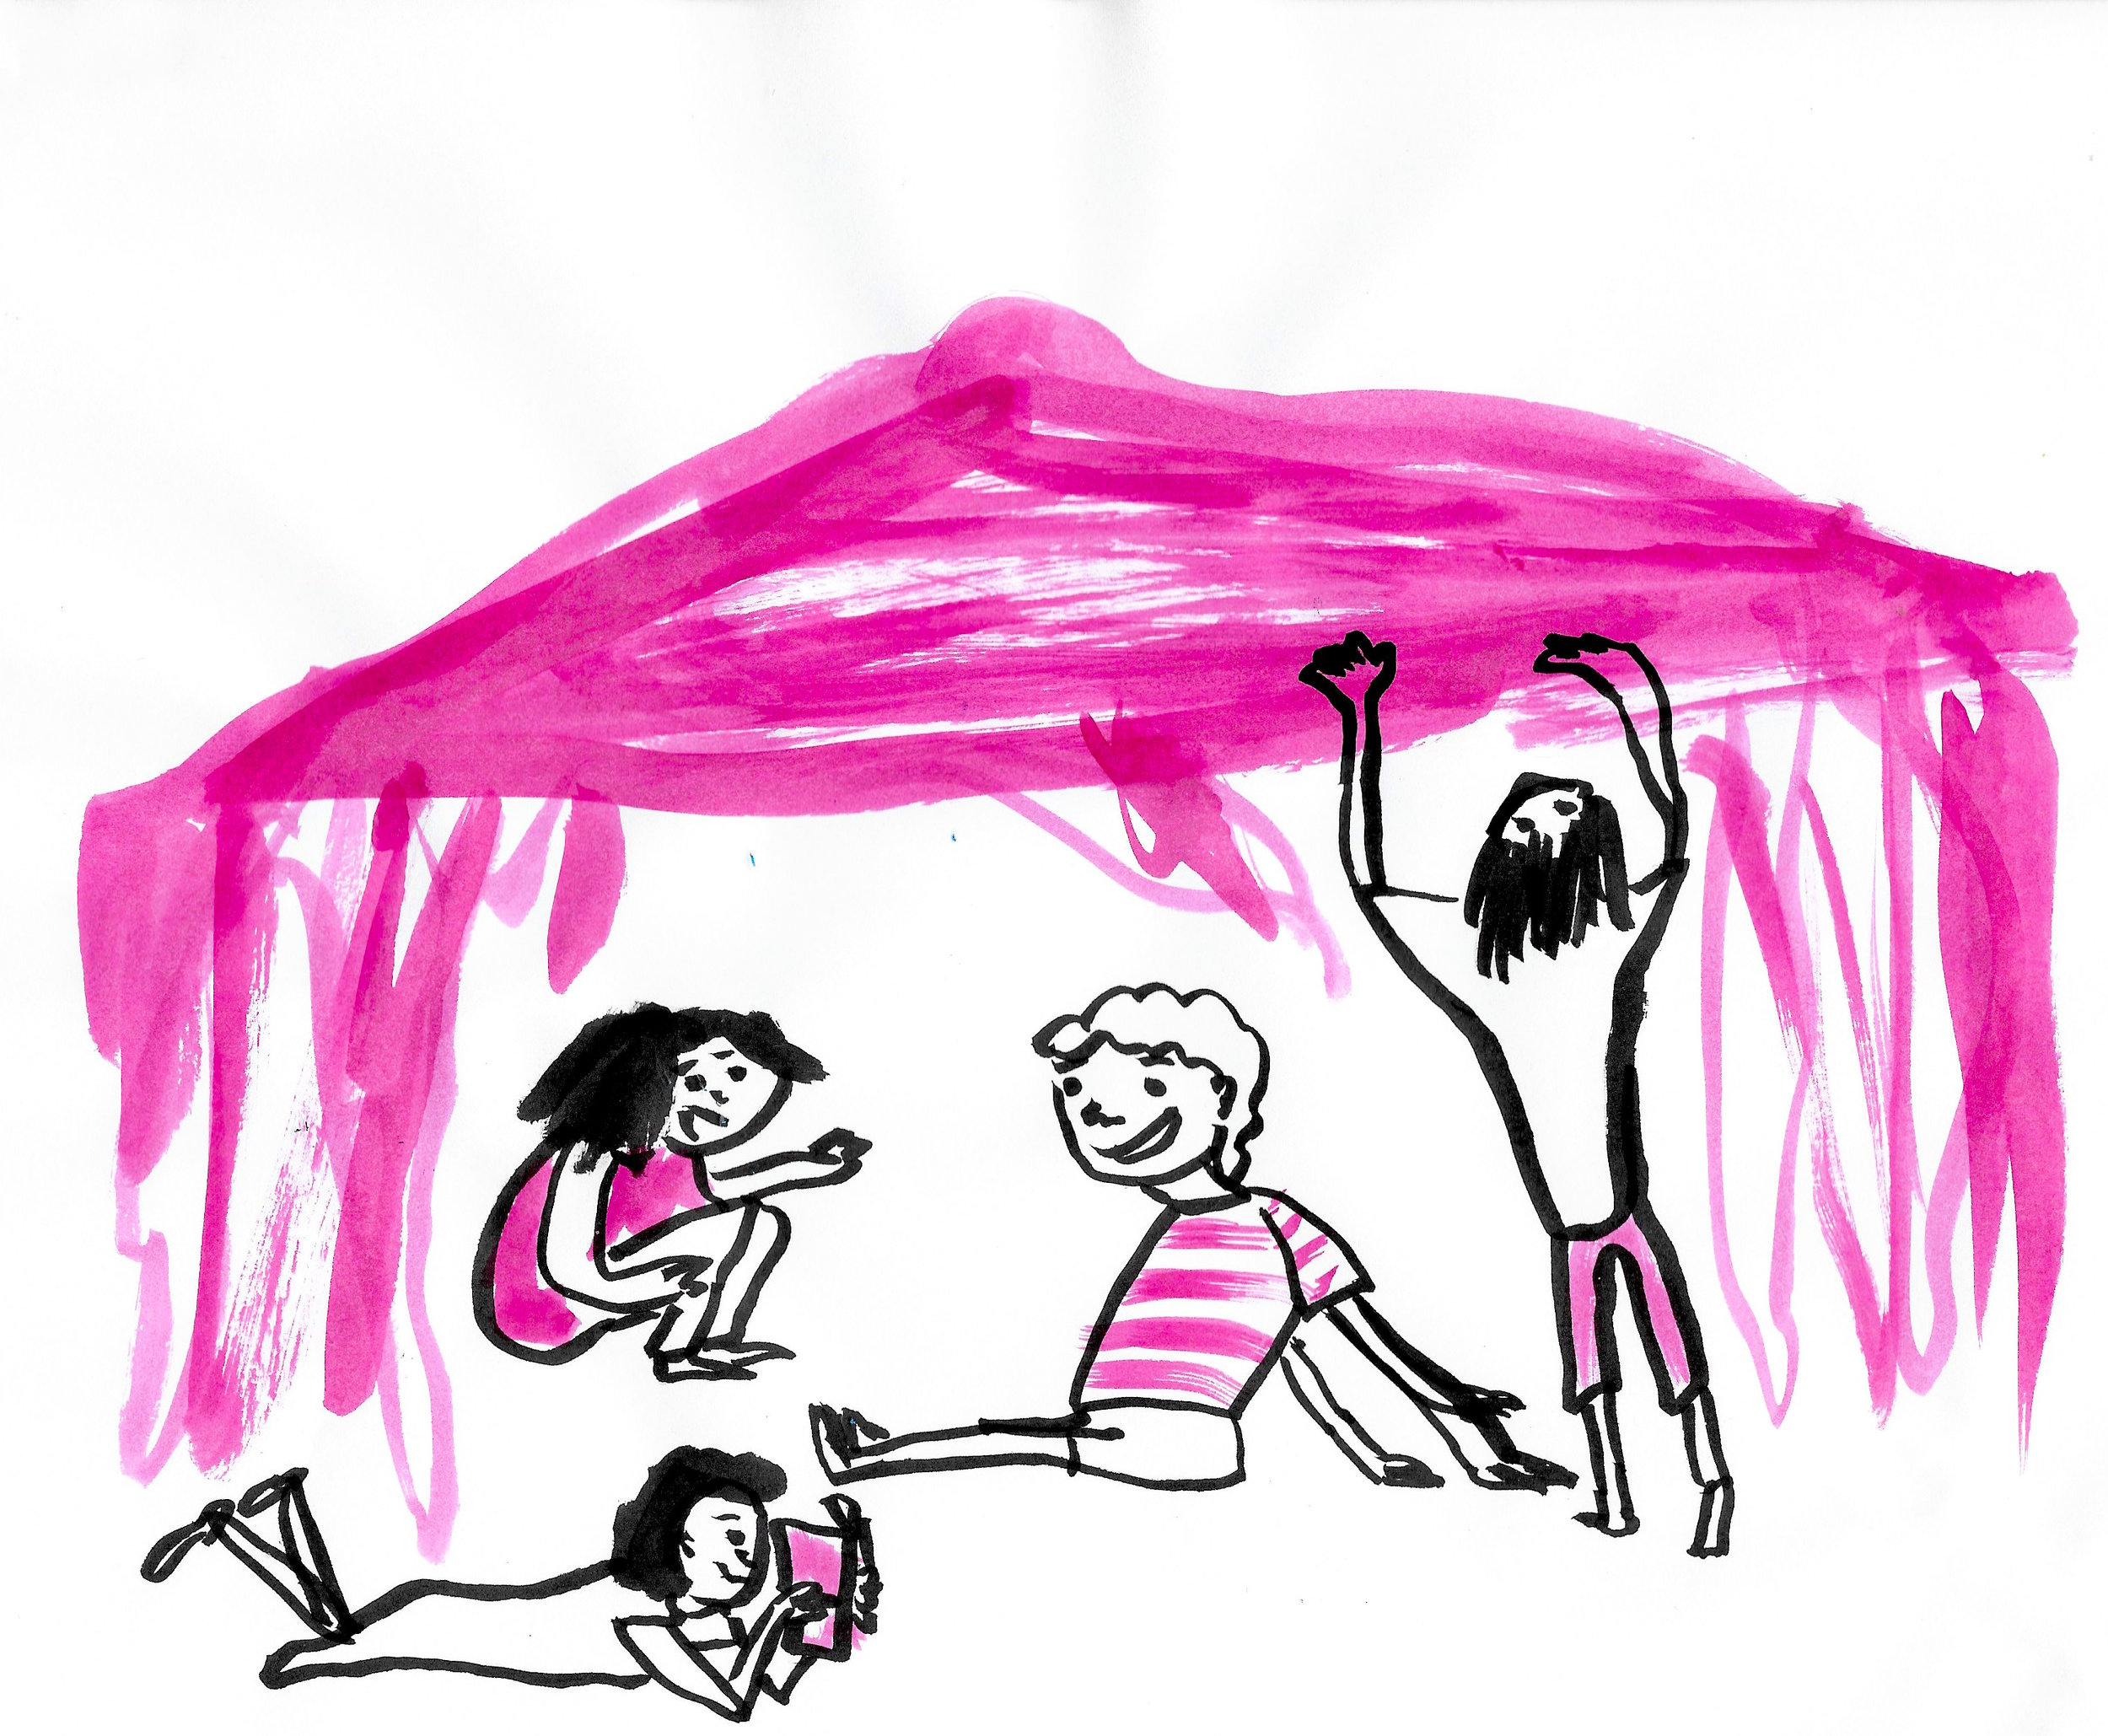 One-minute character drawings. I think they made a blanket tent? This entire page was done with no reference, no thoughts, in under 4 minutes.